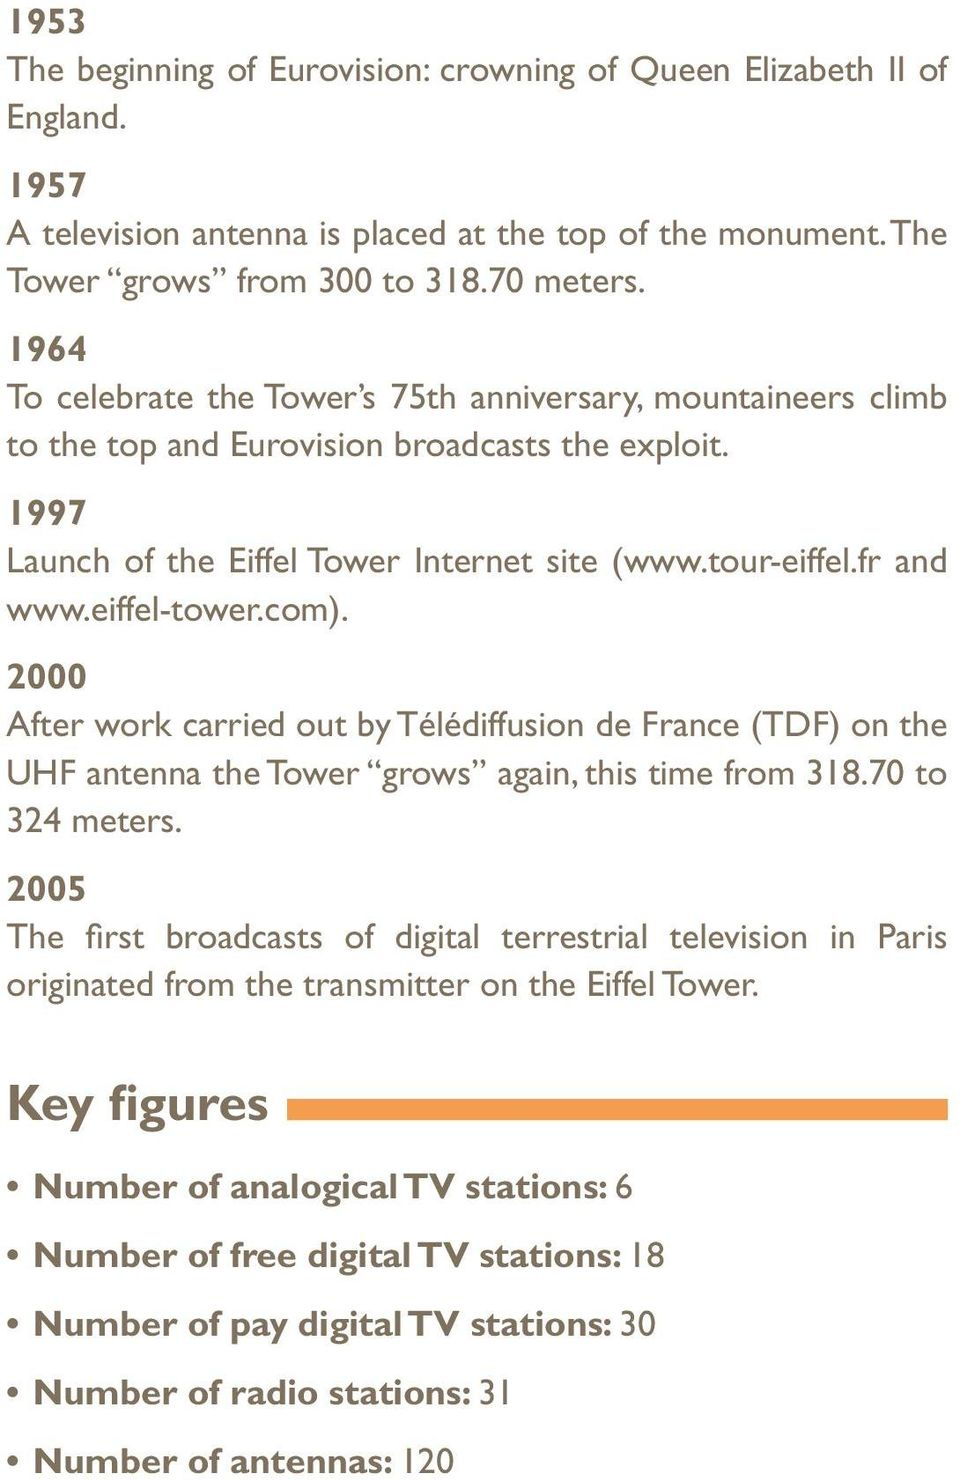 eiffel-tower.com). 2000 After work carried out by Télédiffusion de France (TDF) on the UHF antenna the Tower grows again, this time from 318.70 to 324 meters.